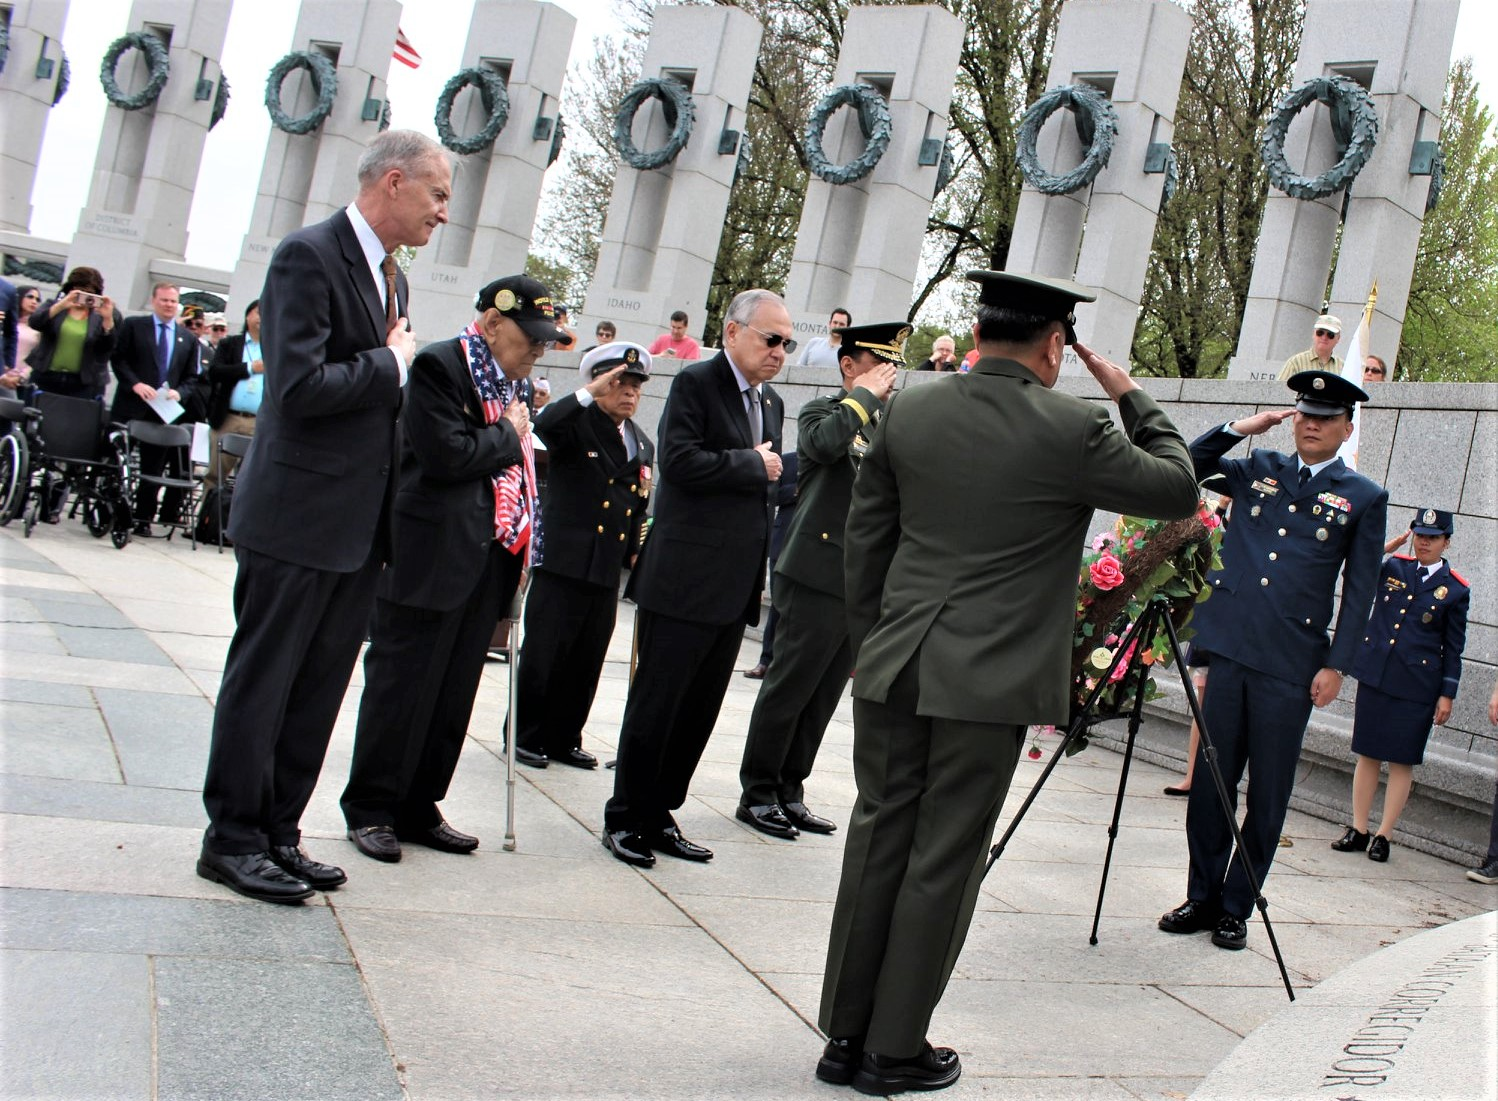 Amb. Jose Manuel Romualdez leads the wreath-laying ceremony at the National World War II Memorial. (Photo by Bing Branigin)